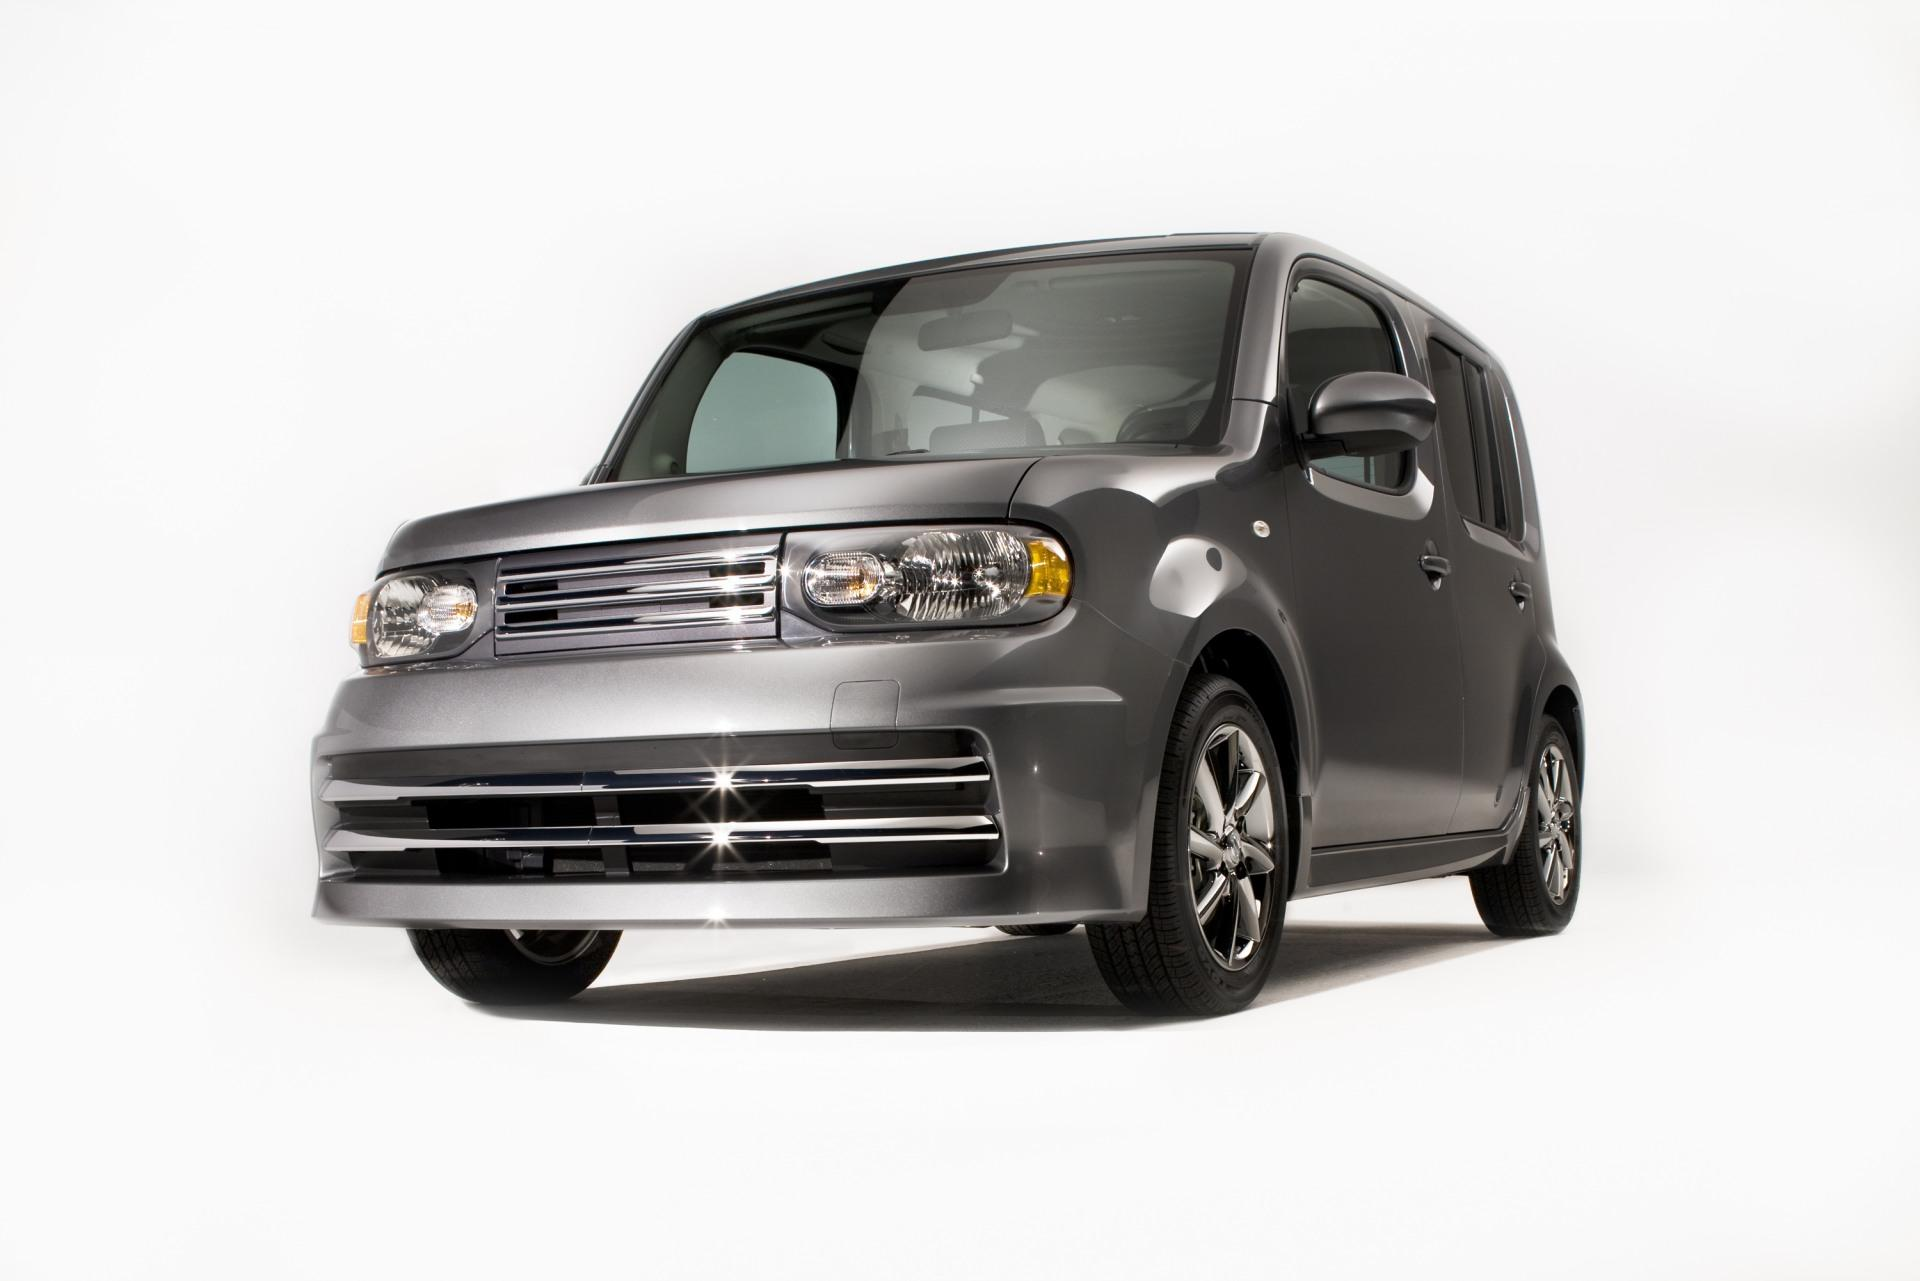 2009 nissan cube krom news and information. Black Bedroom Furniture Sets. Home Design Ideas